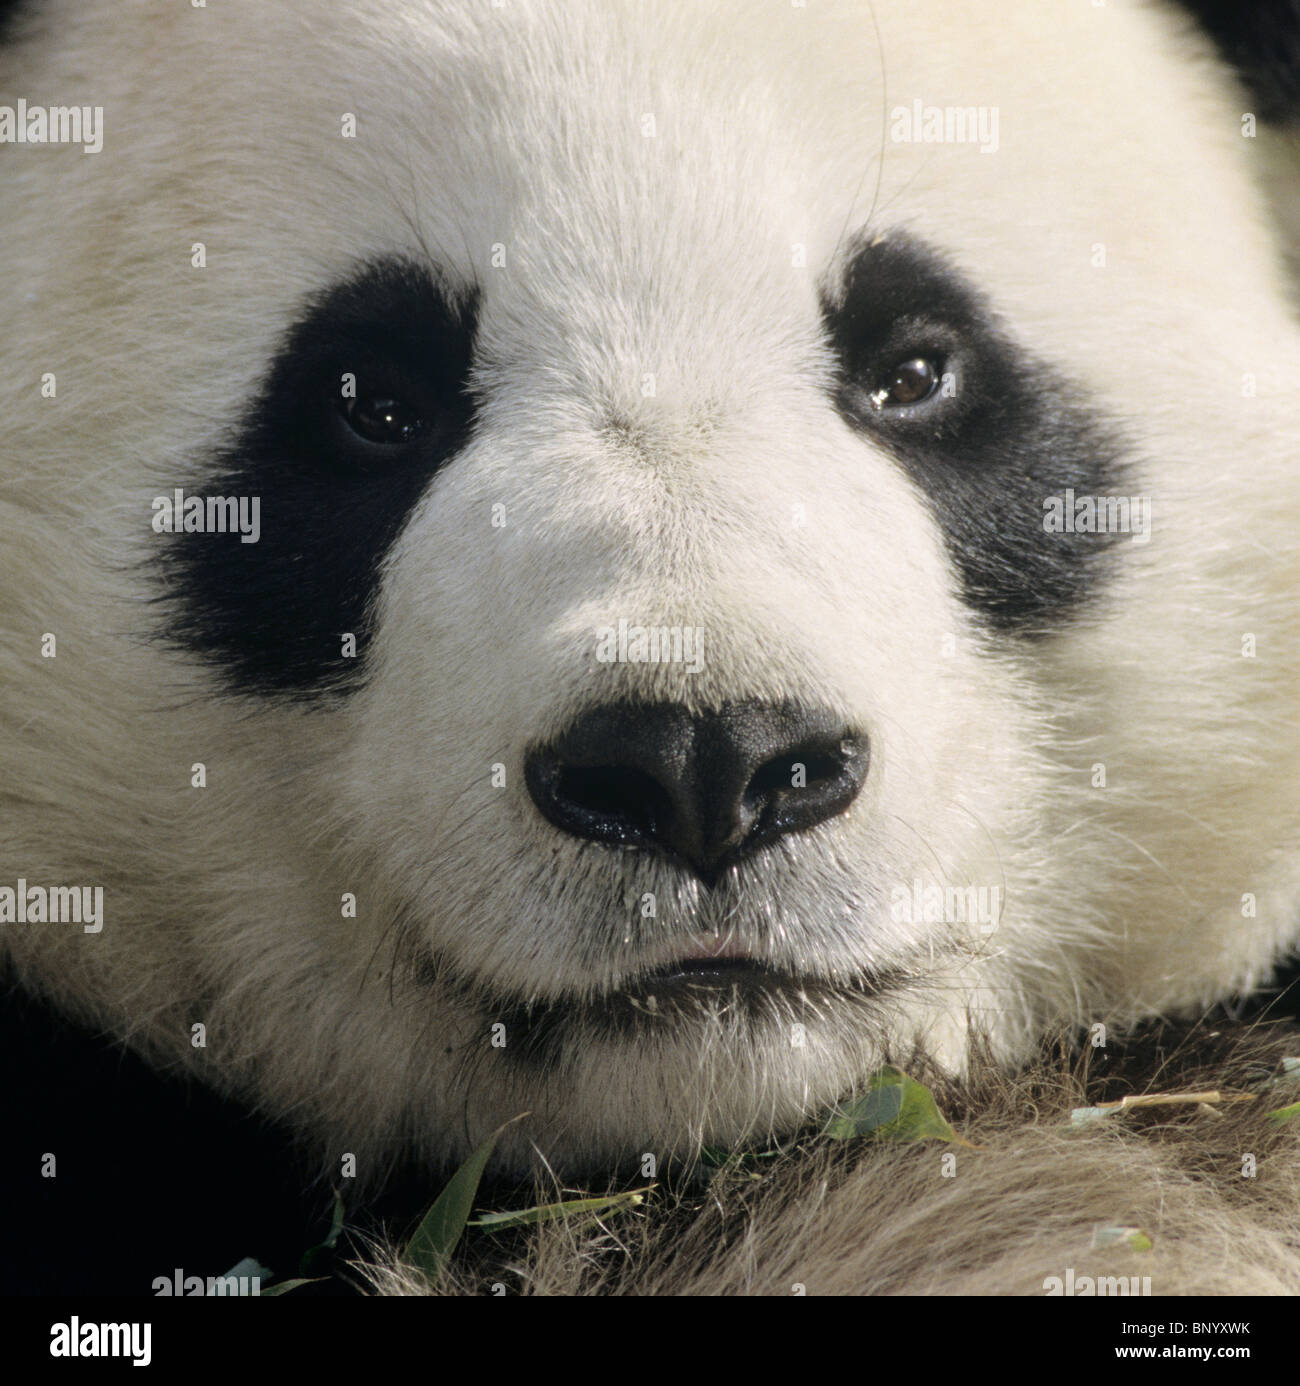 Giant panda showing clown-like face with black nose and eye patches China. - Stock Image